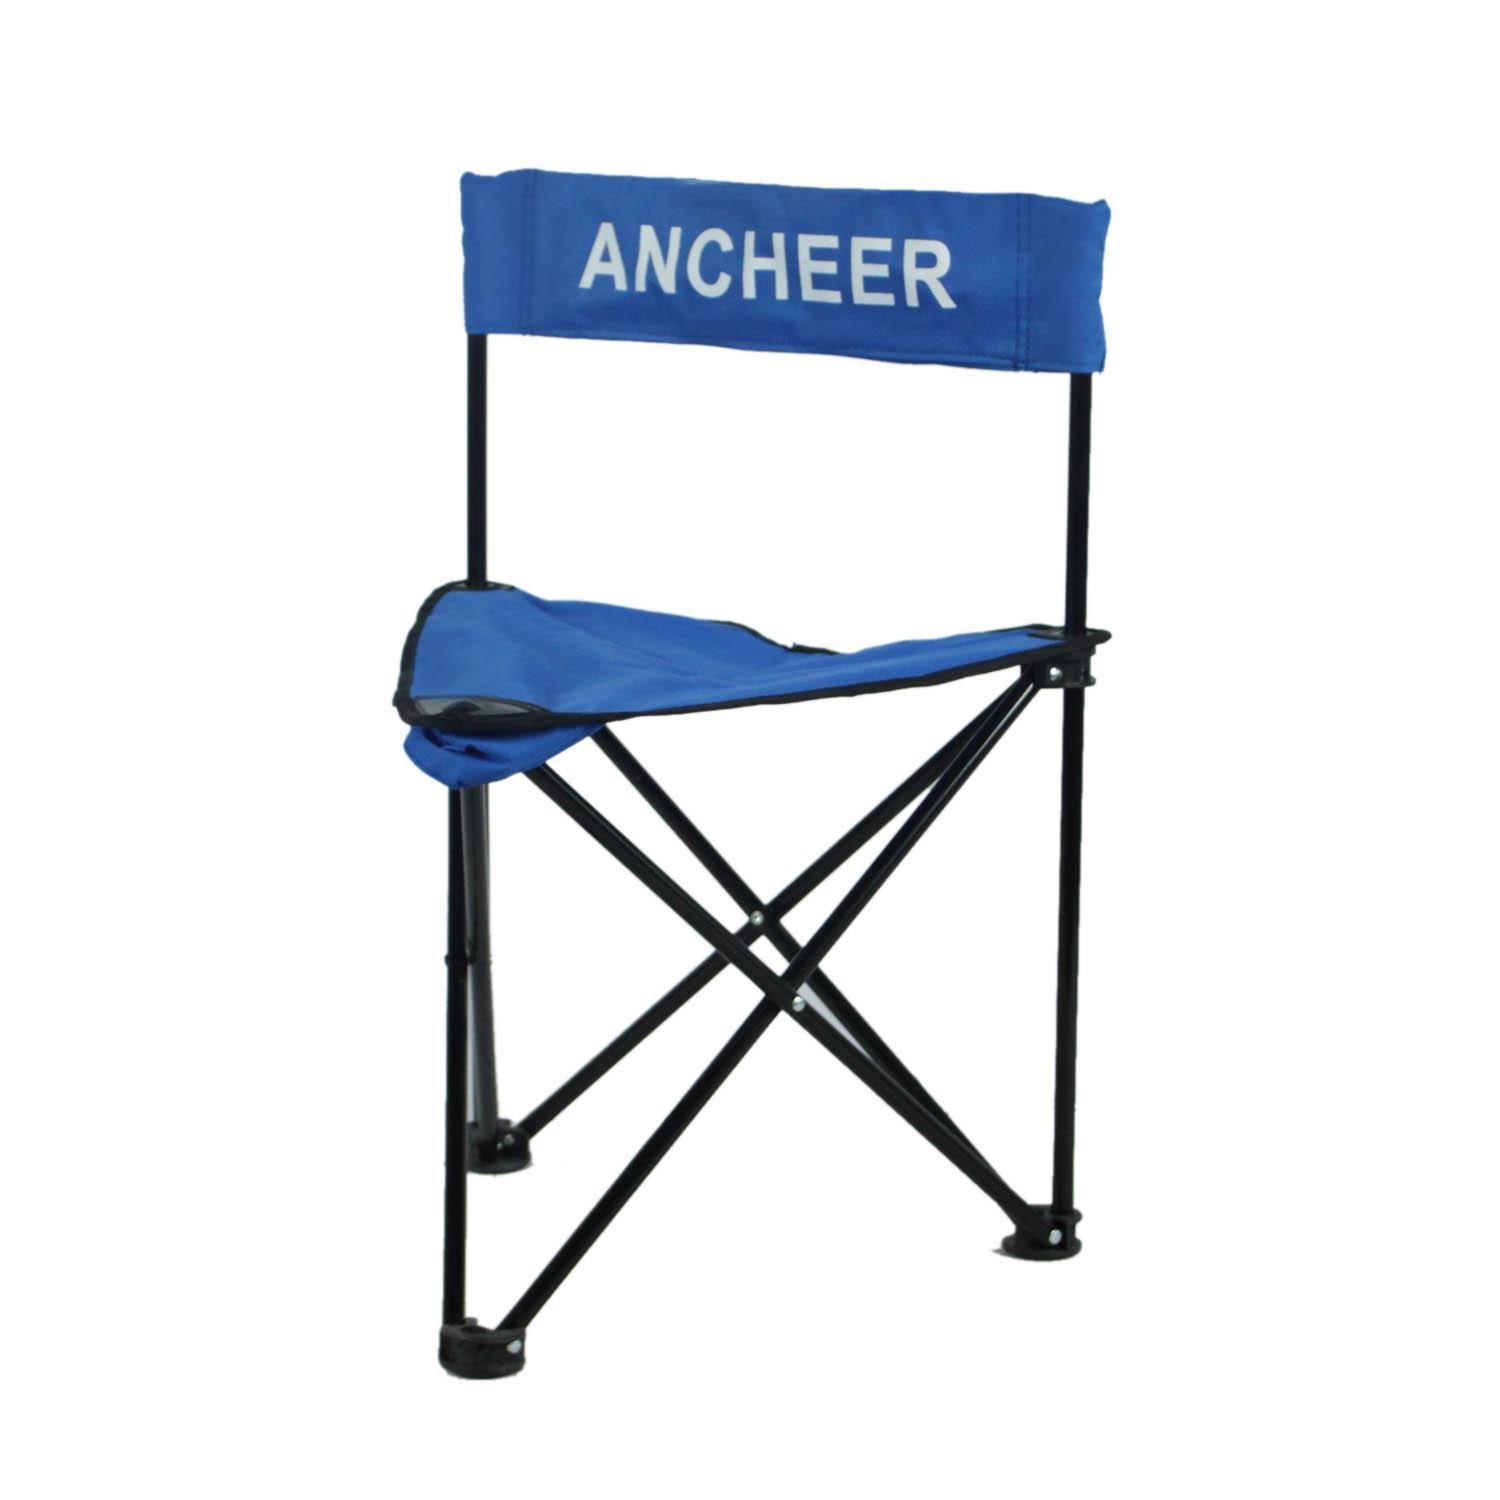 chair cba steel the store lightweight outdoor potable backpack folding fishing beach